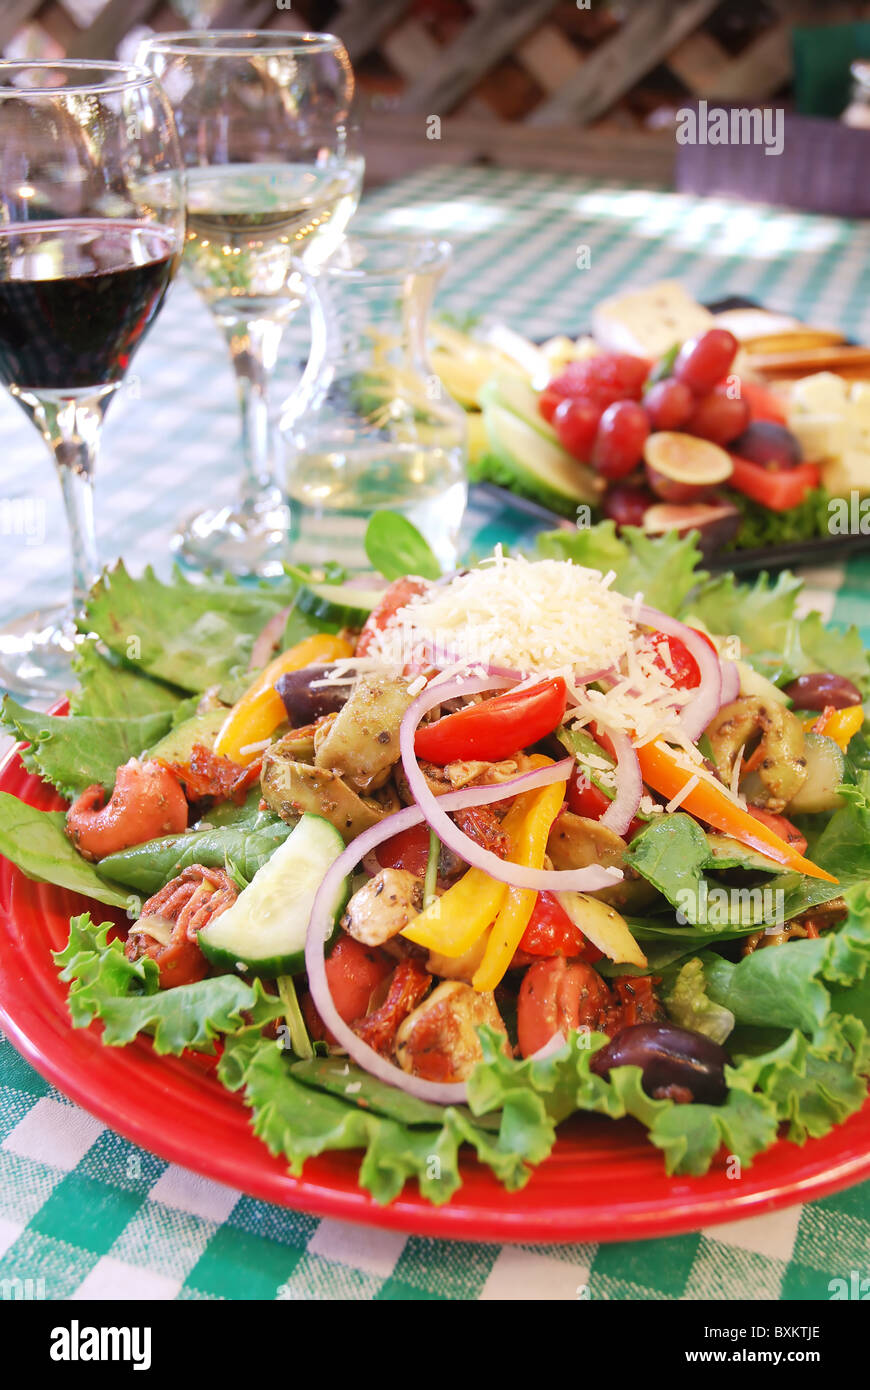 Plate of tortellini and vegetable salad at restaurant Stock Photo